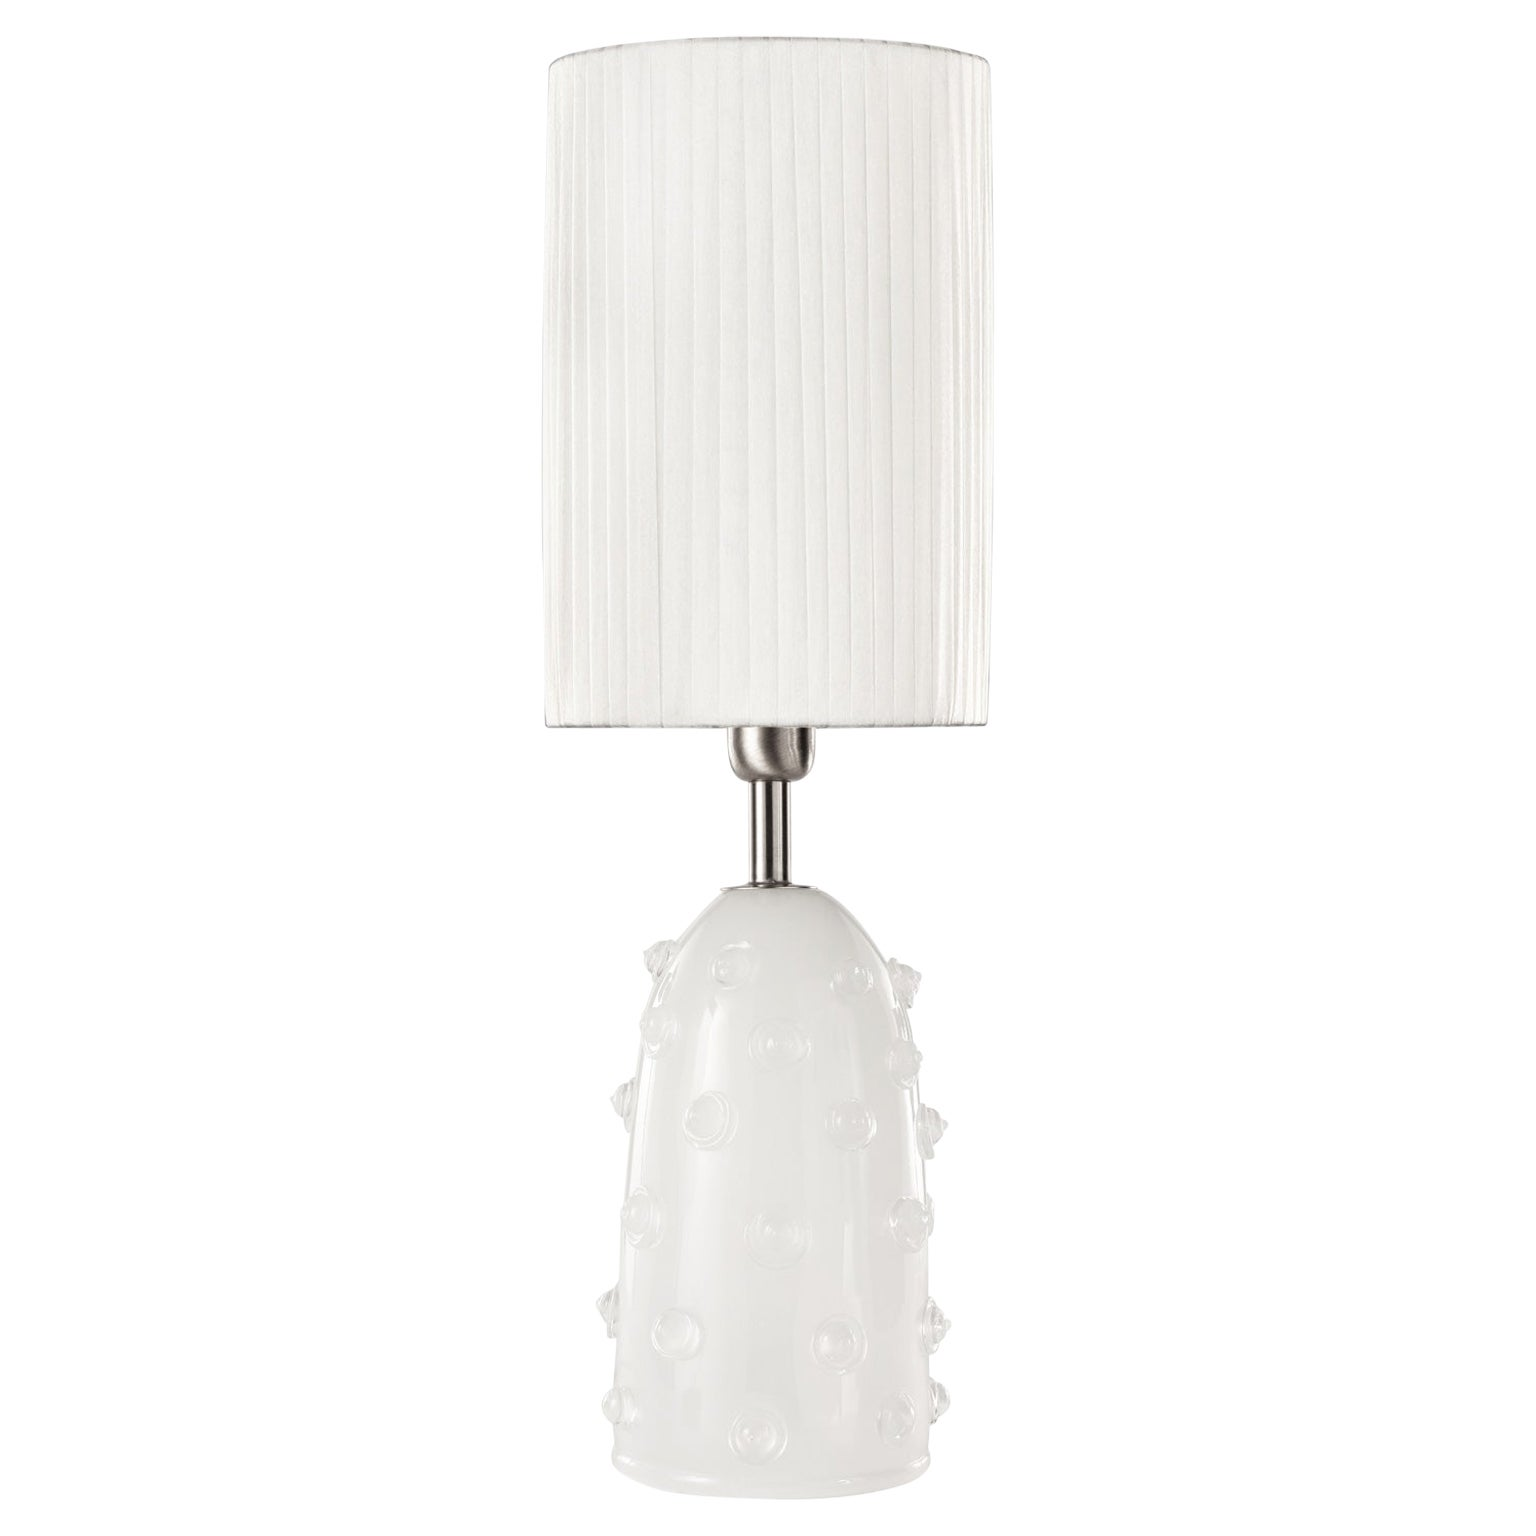 """Artistic Table Lamp Silk Glass Clear """"Borchie"""" Grey Lampshade by Multiforme"""